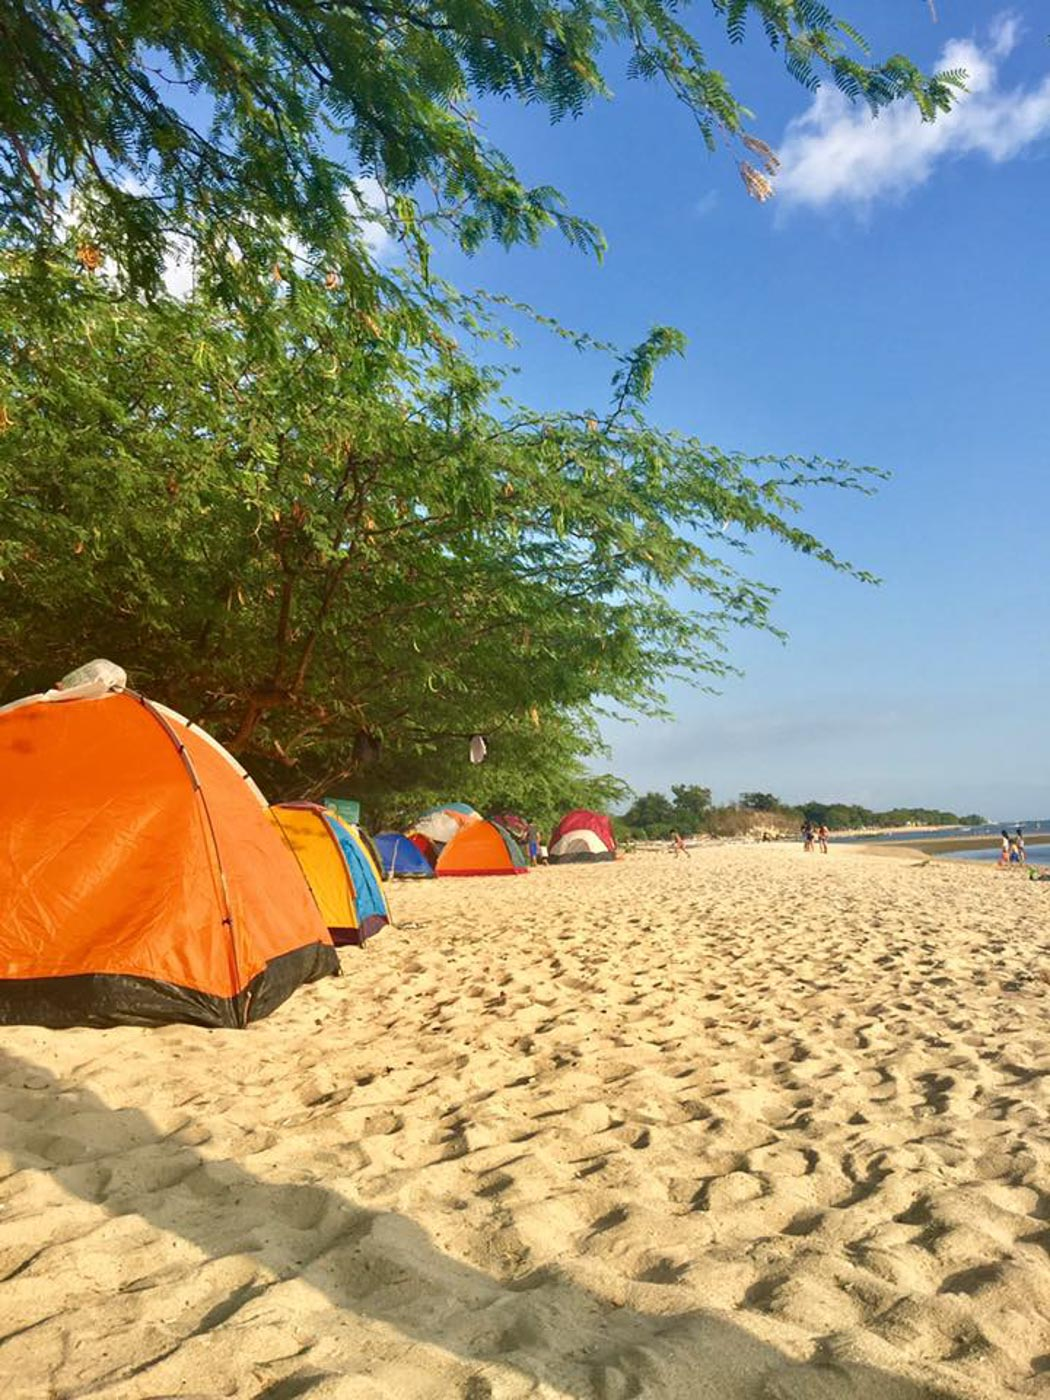 BEACH CAMPING. Camping is the budget option for spending the night at Calatagan. Photo by Ailyn Deofiles Galurau200e